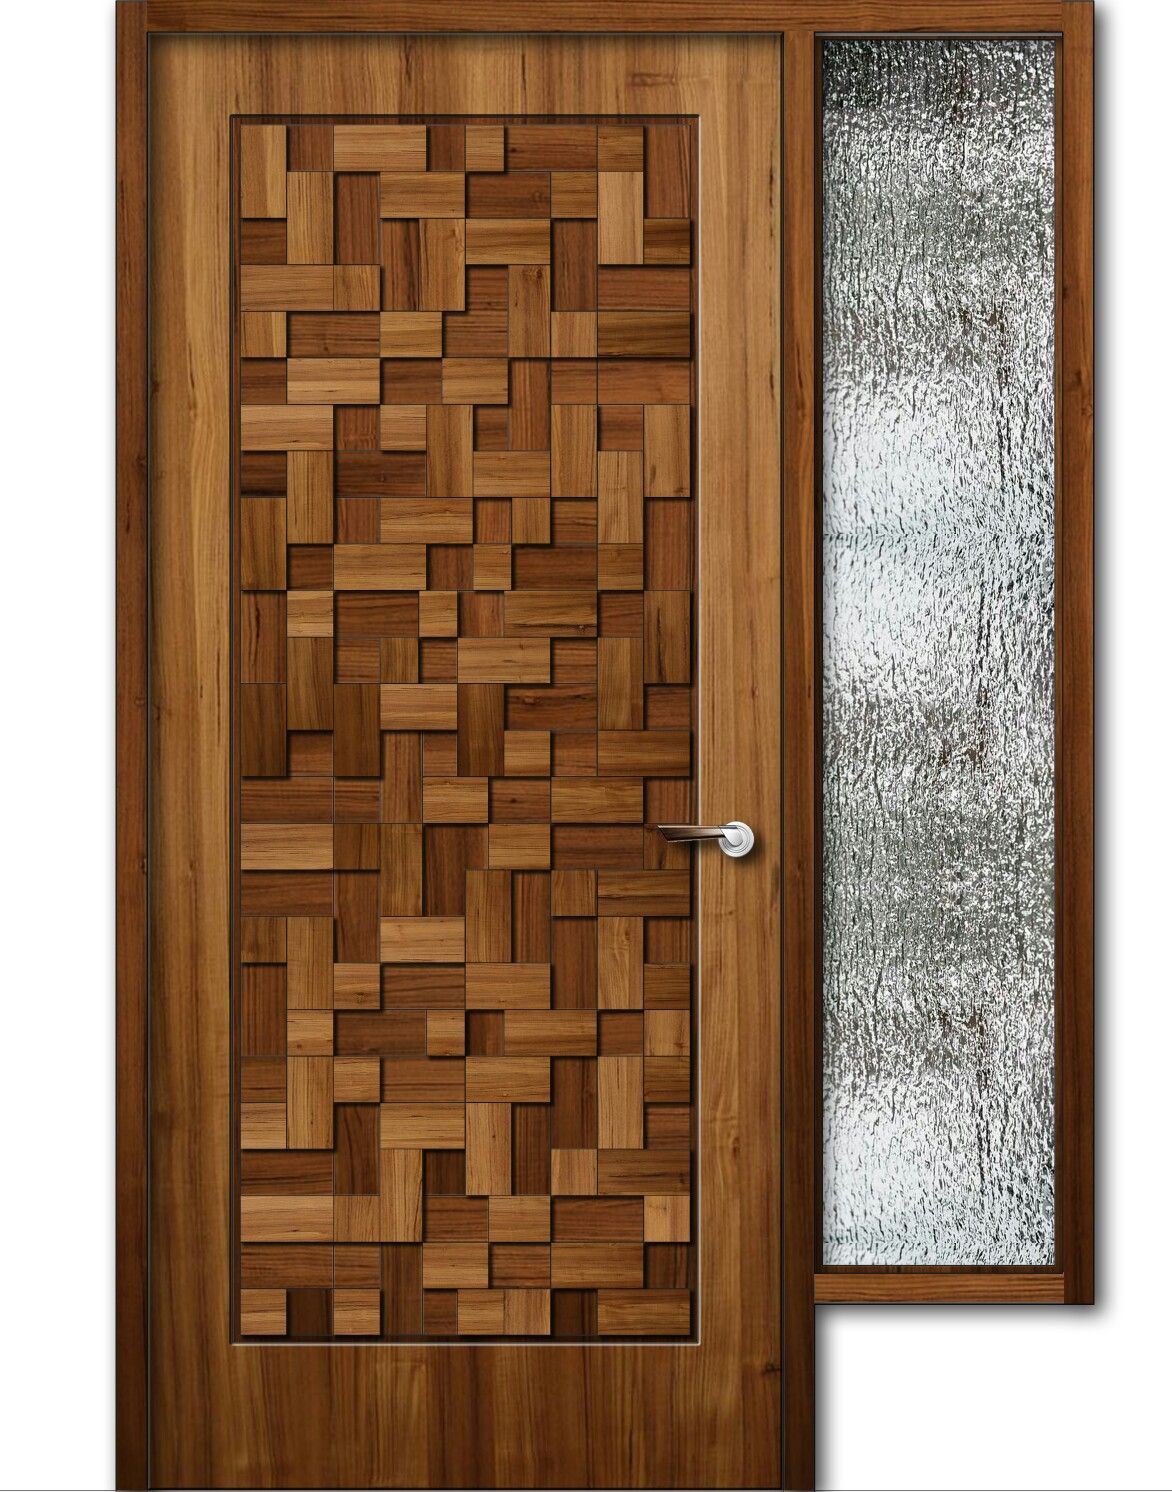 Plywood Door Designs For Rooms Teak Wood Finish Wooden Door With Window 8feet Height